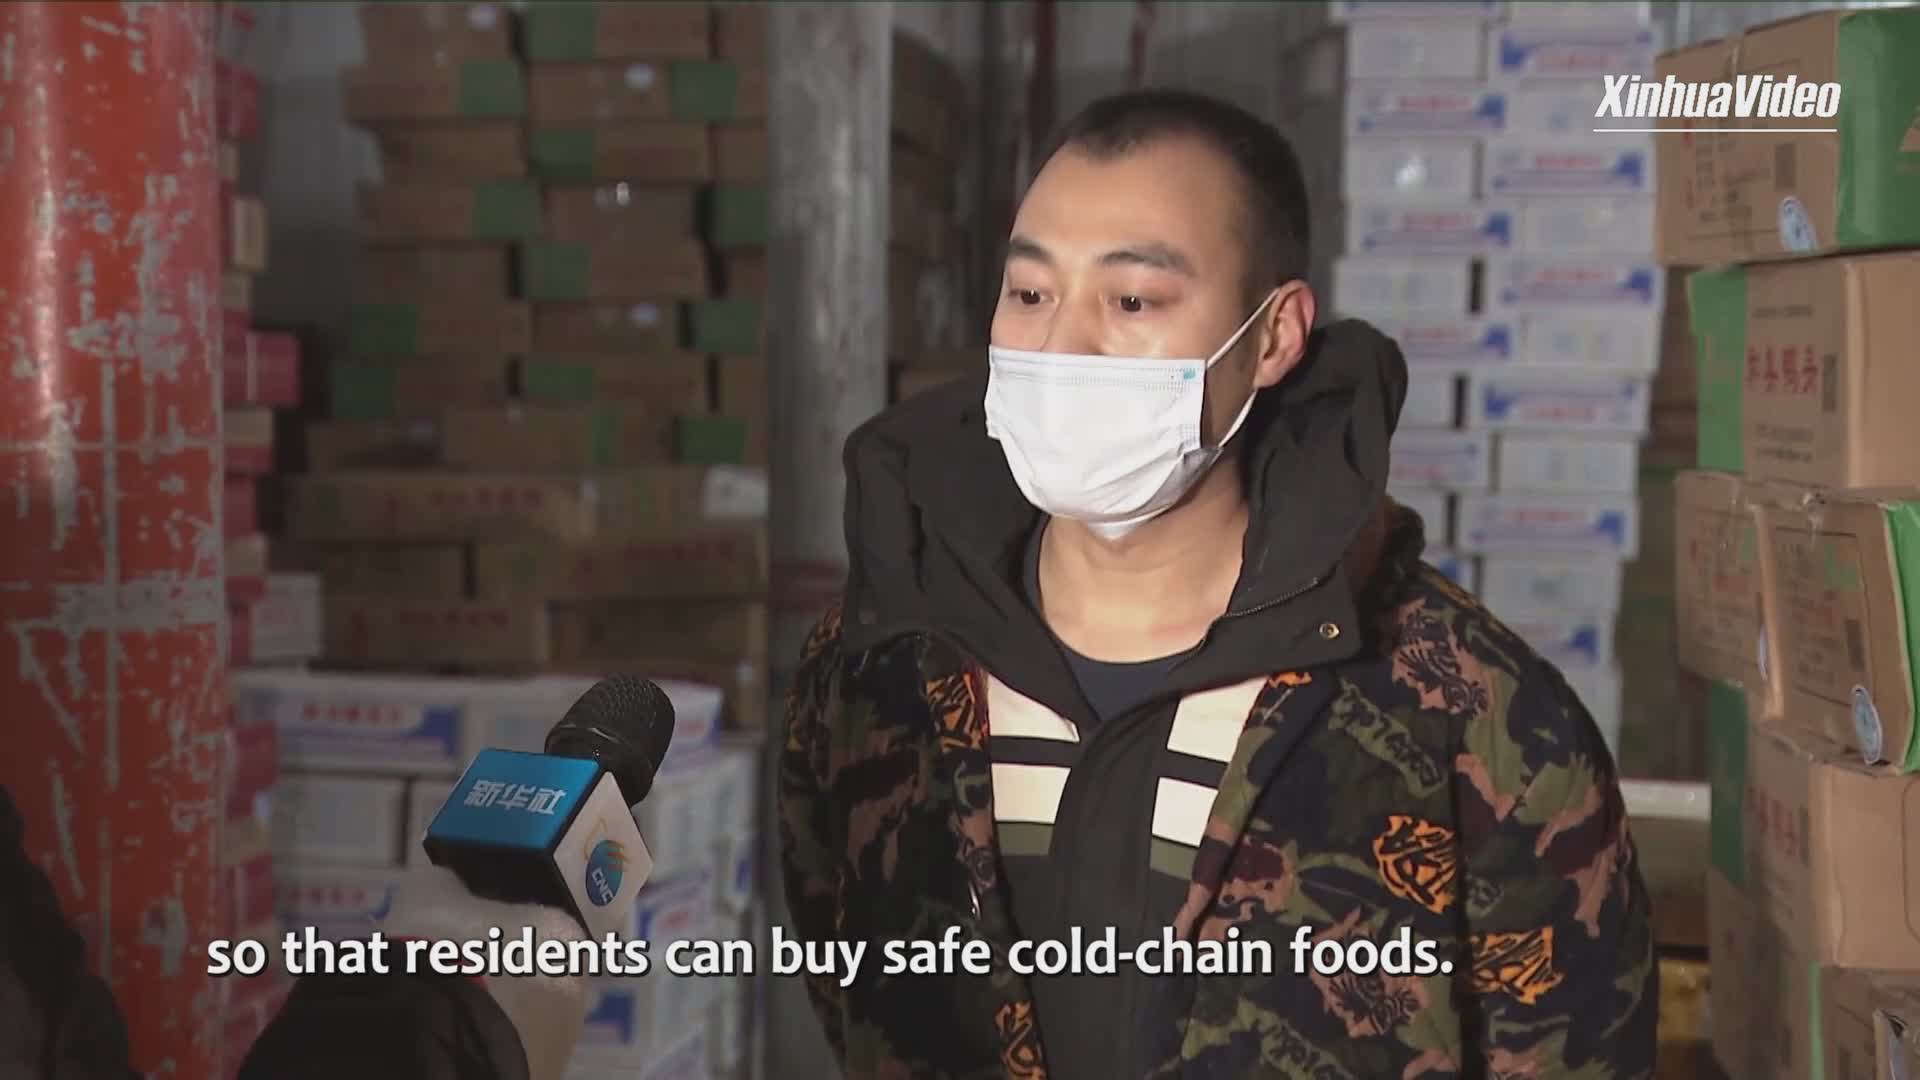 Chinese cold-chain businesses ensure food safety amid COVID-19